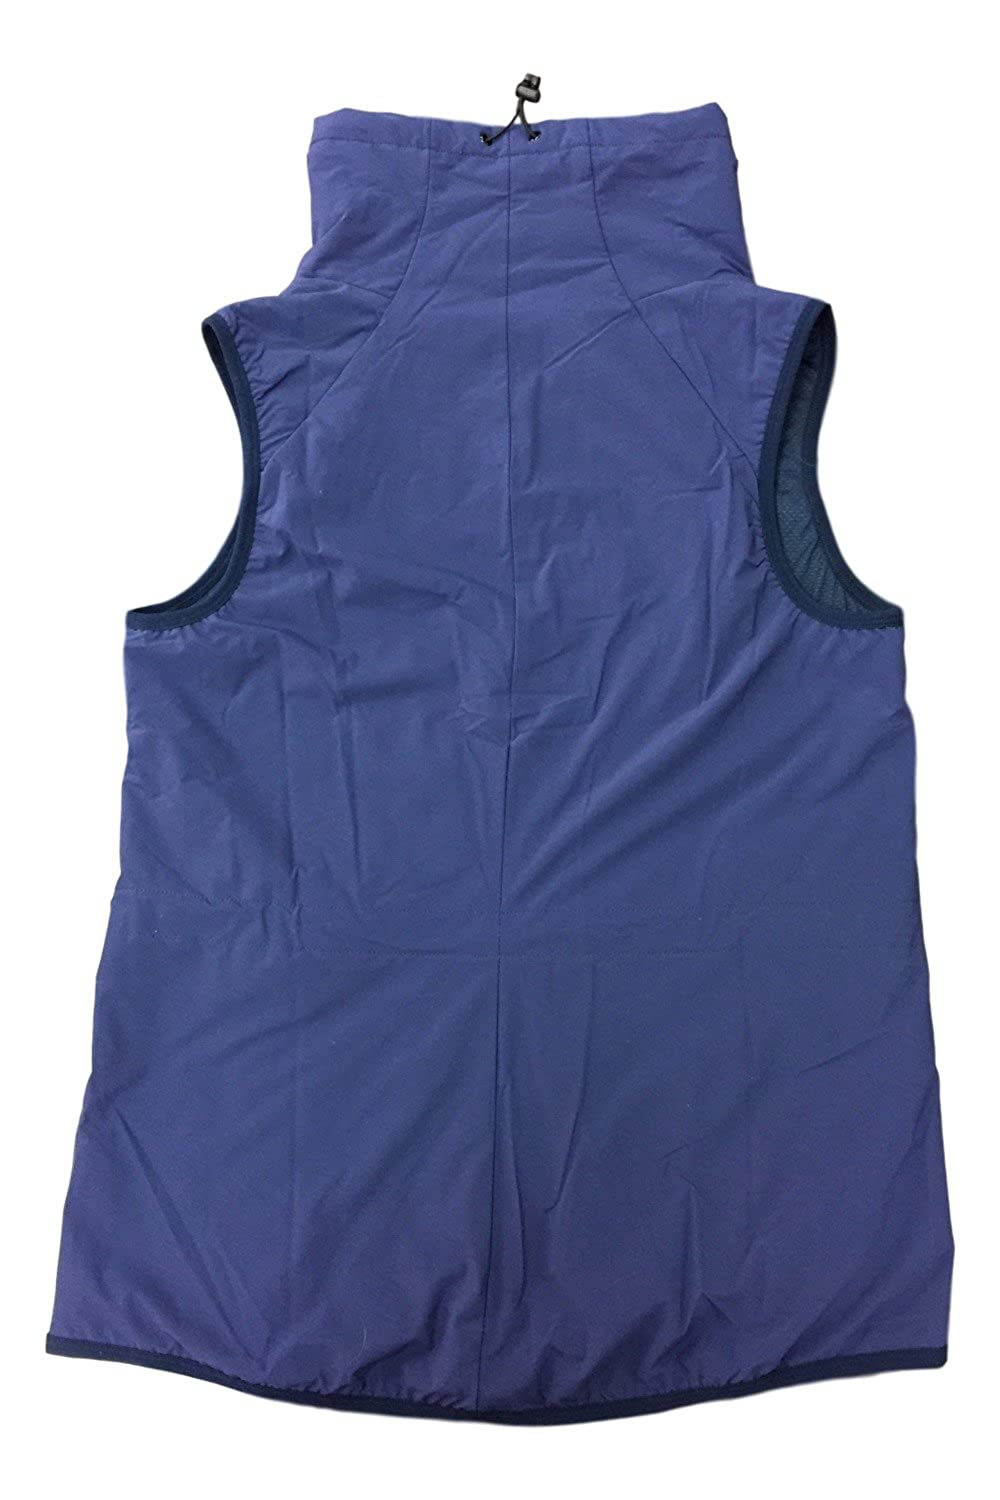 122114f7bbdc Nike Womens Arolyr After Vest Blue at Amazon Women s Clothing store